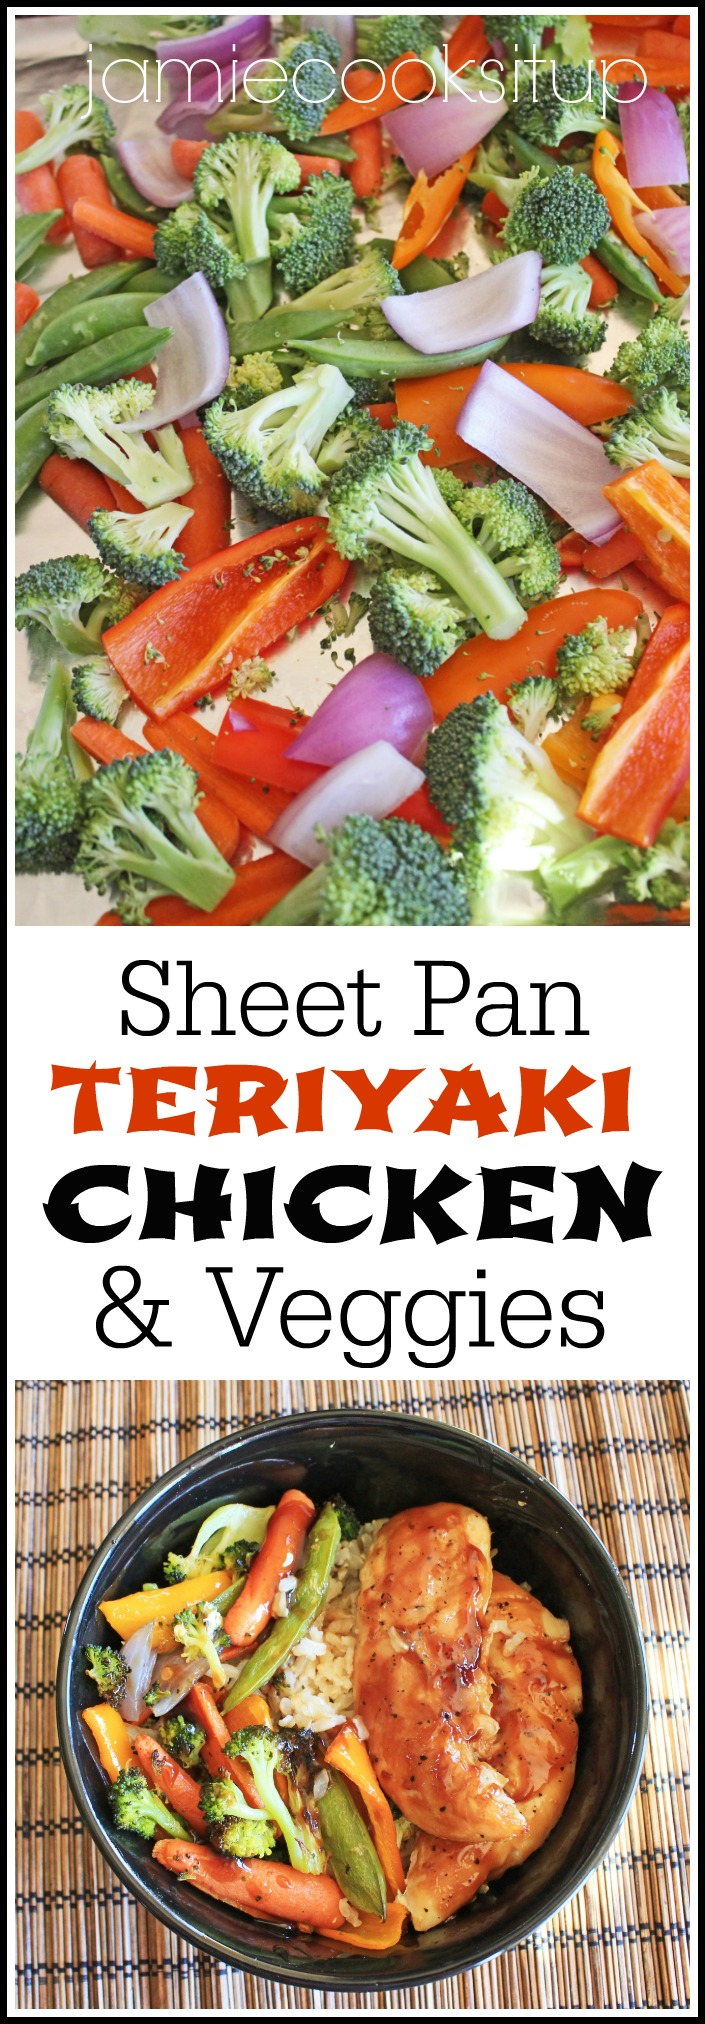 sheet-pan-teriyaki-chicken-from-jamie-cooks-it-up